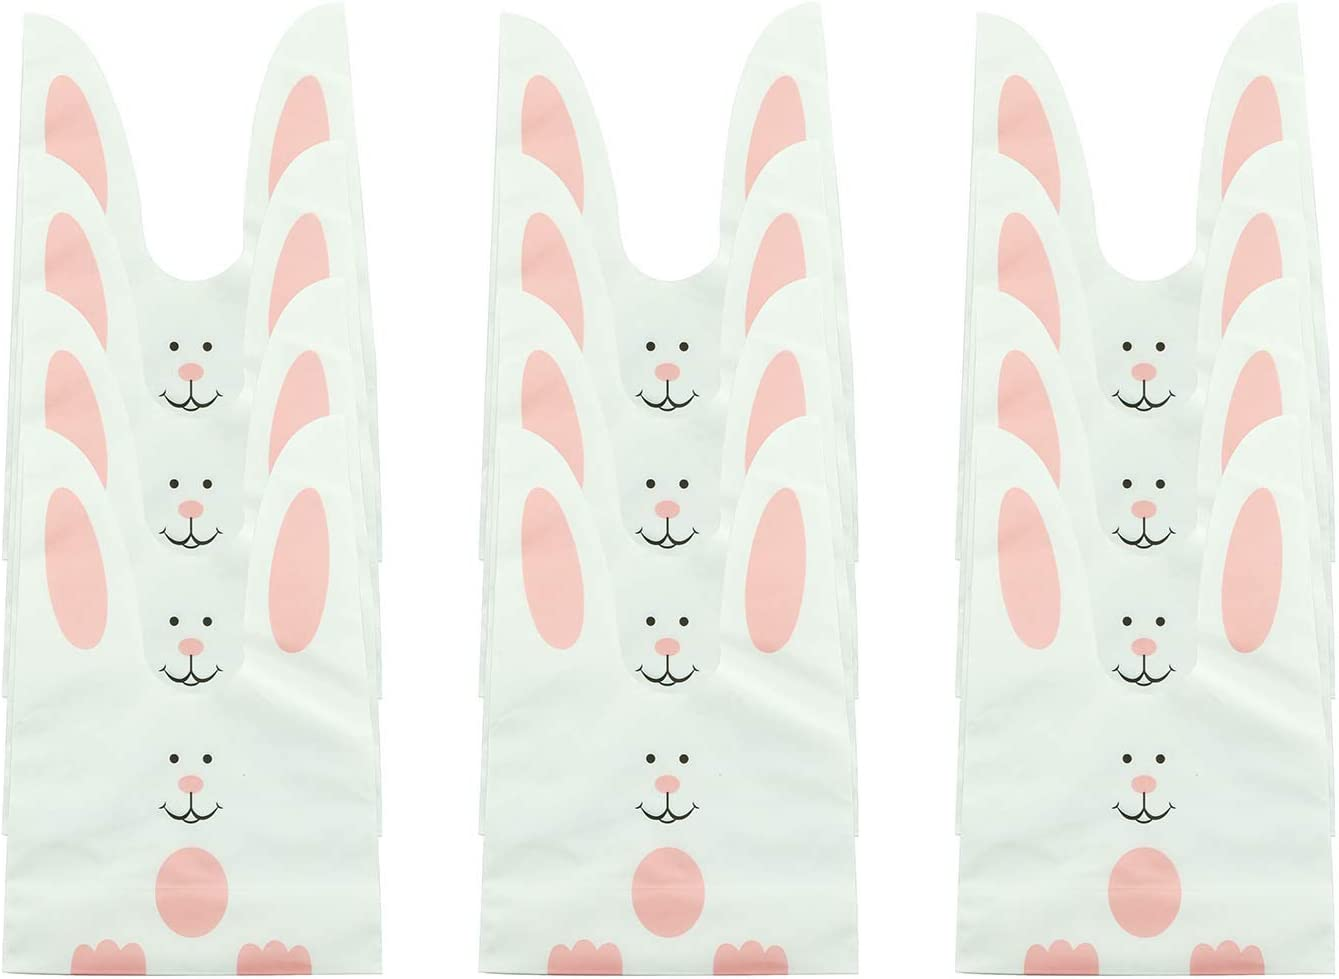 Tegg Candy Gift Wrap Bag 50PCS Cute Rabbit Ear Biscuits Cookie Candy Bags Gift Storage Party Bags with Golden Twist Ties